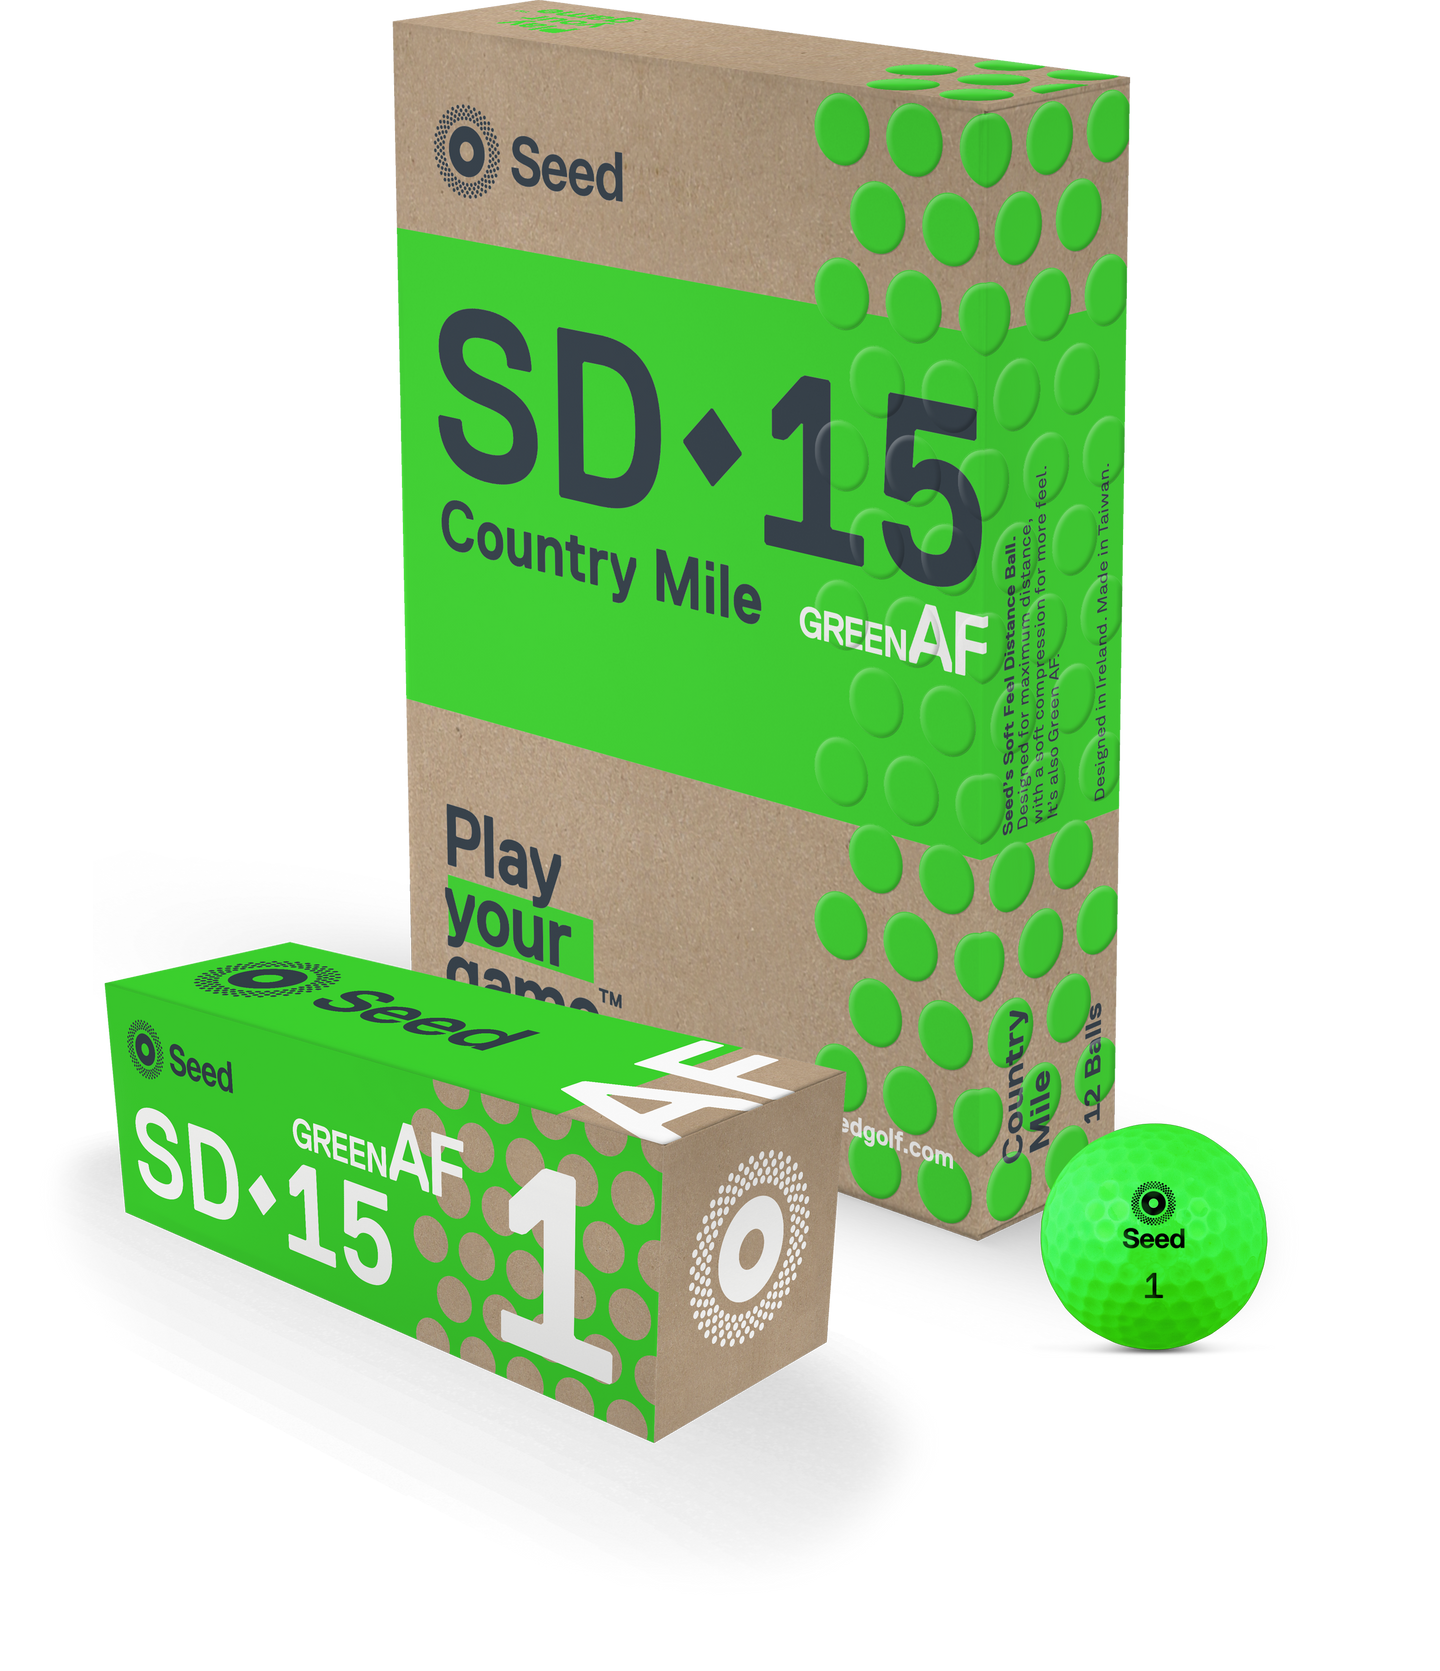 Seed SD-15 Country Mile - GreenAF